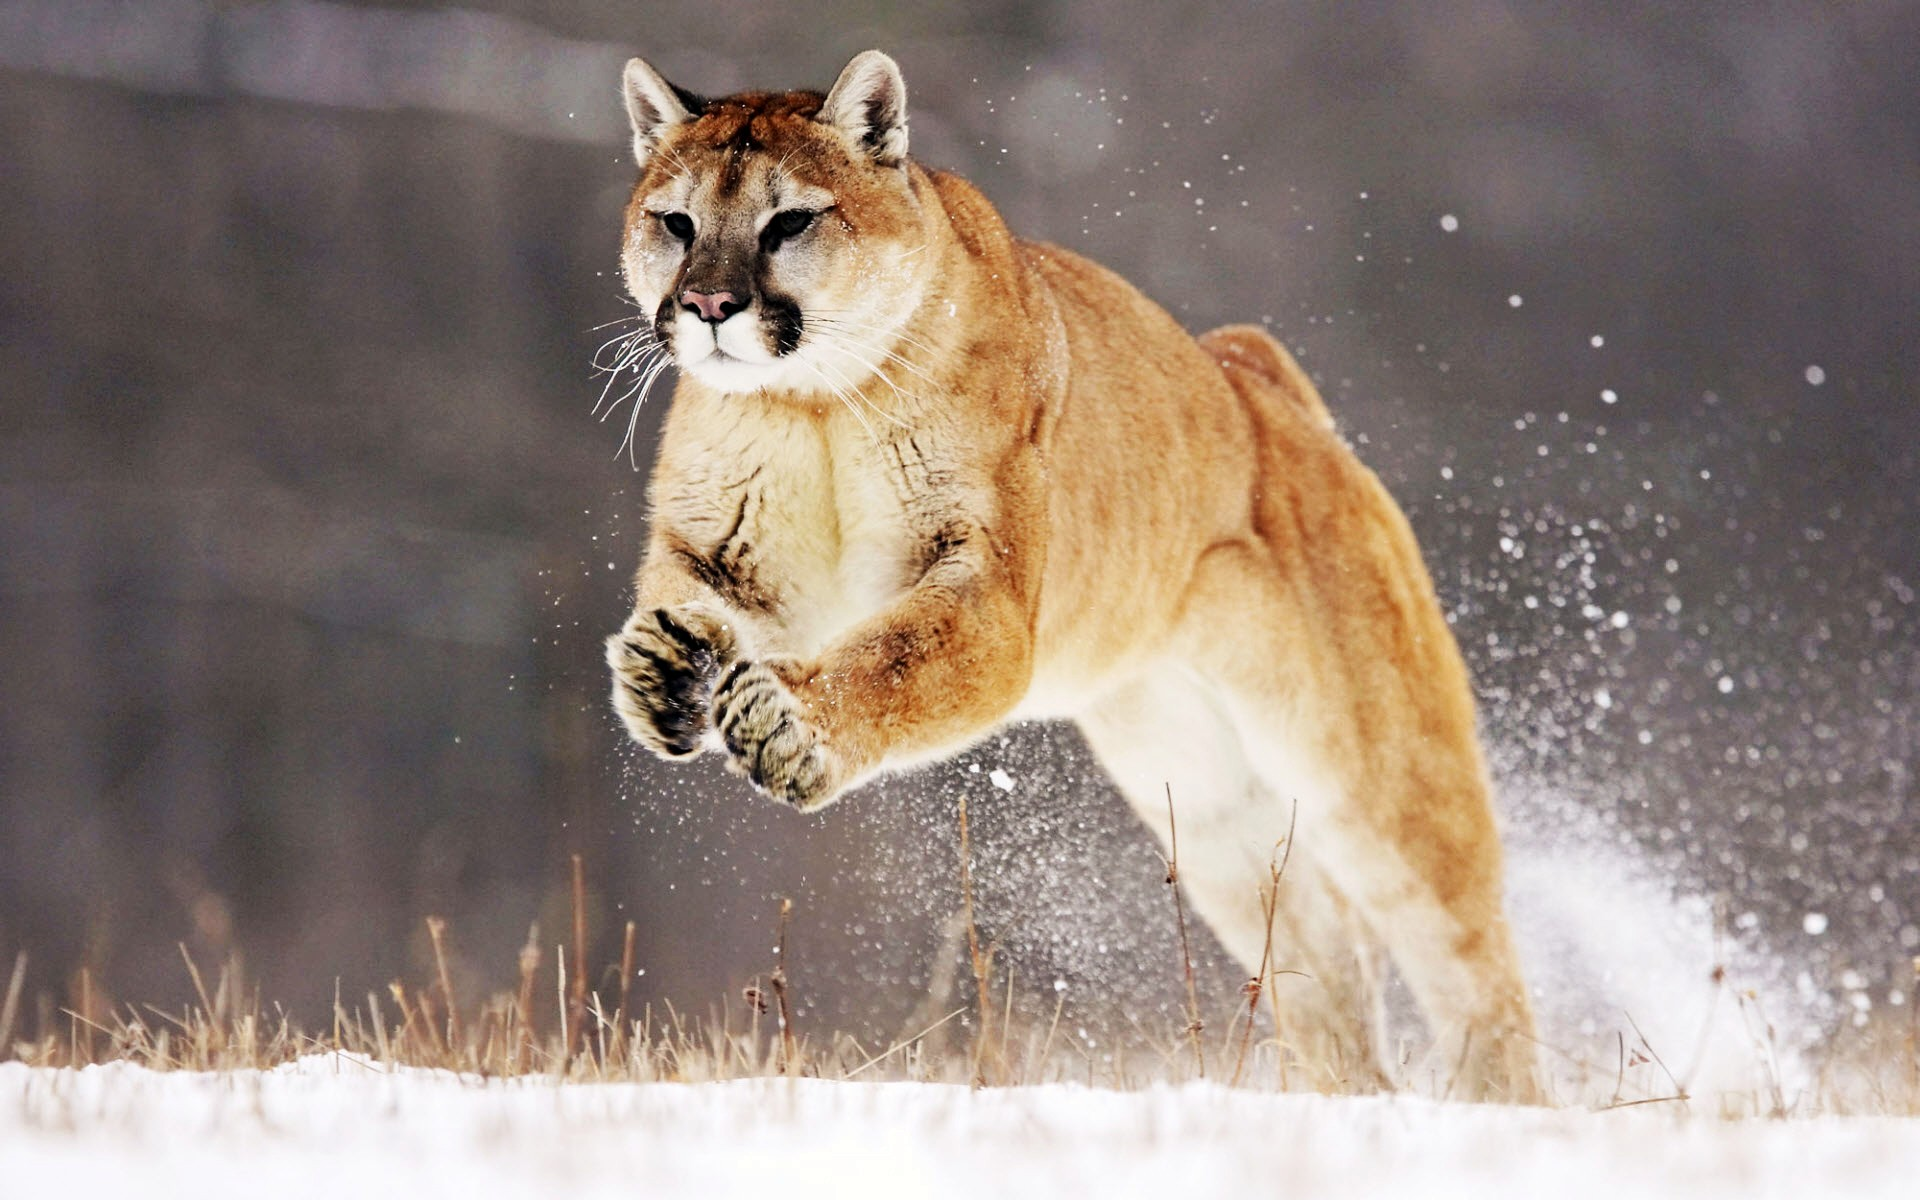 Mountain Lion5408316672 - Mountain Lion - Mountain, Lion, Leopard